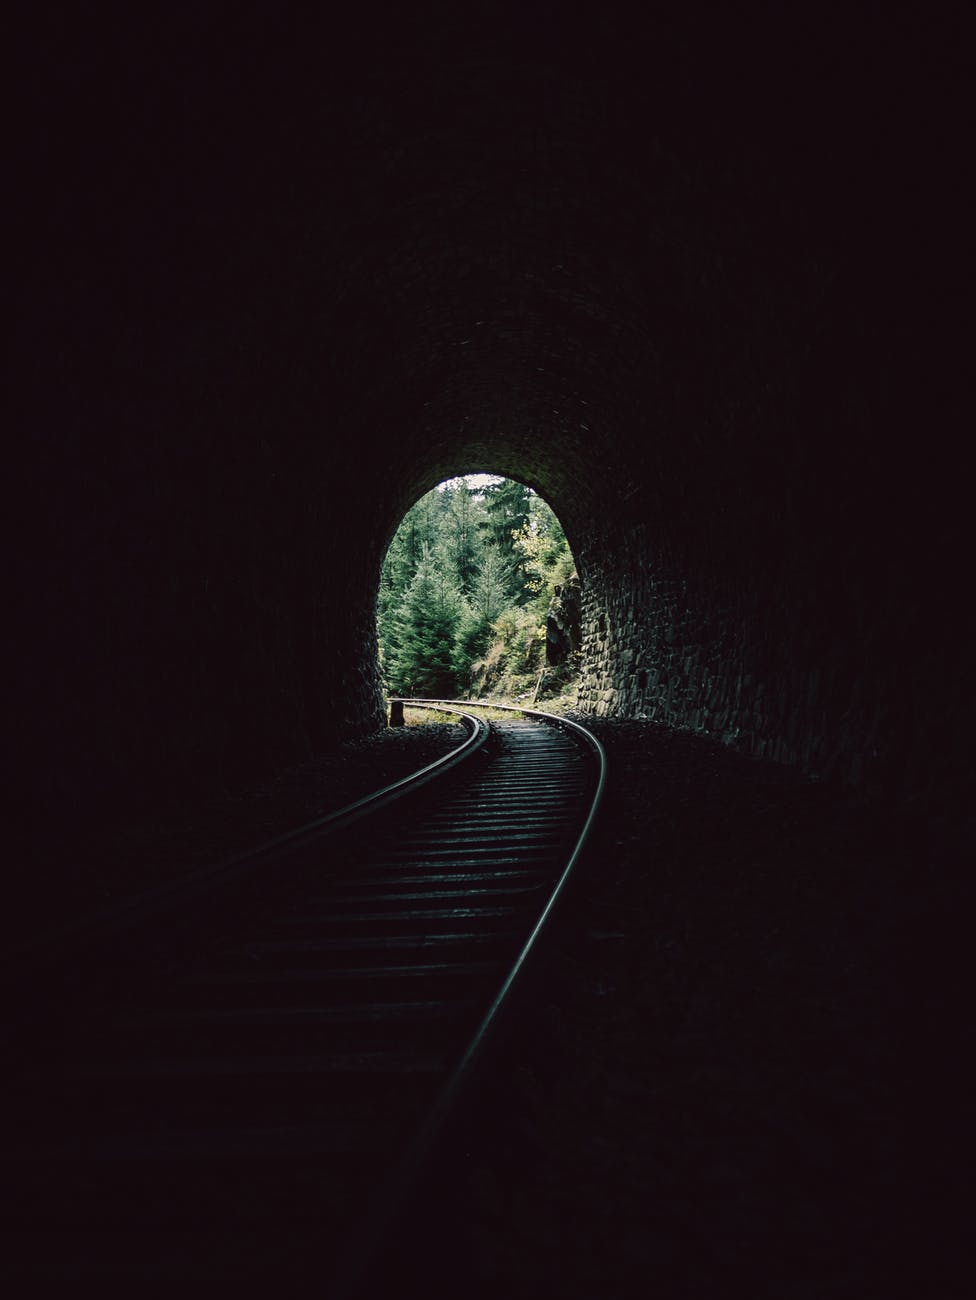 10 Things I Learned in 2020, blog post by Aspasia S. Bissas, 2020, 2021, new year, restrospective, learning, lessons, moving forward, aspasiasbissas.com, light at the end of the tunnel